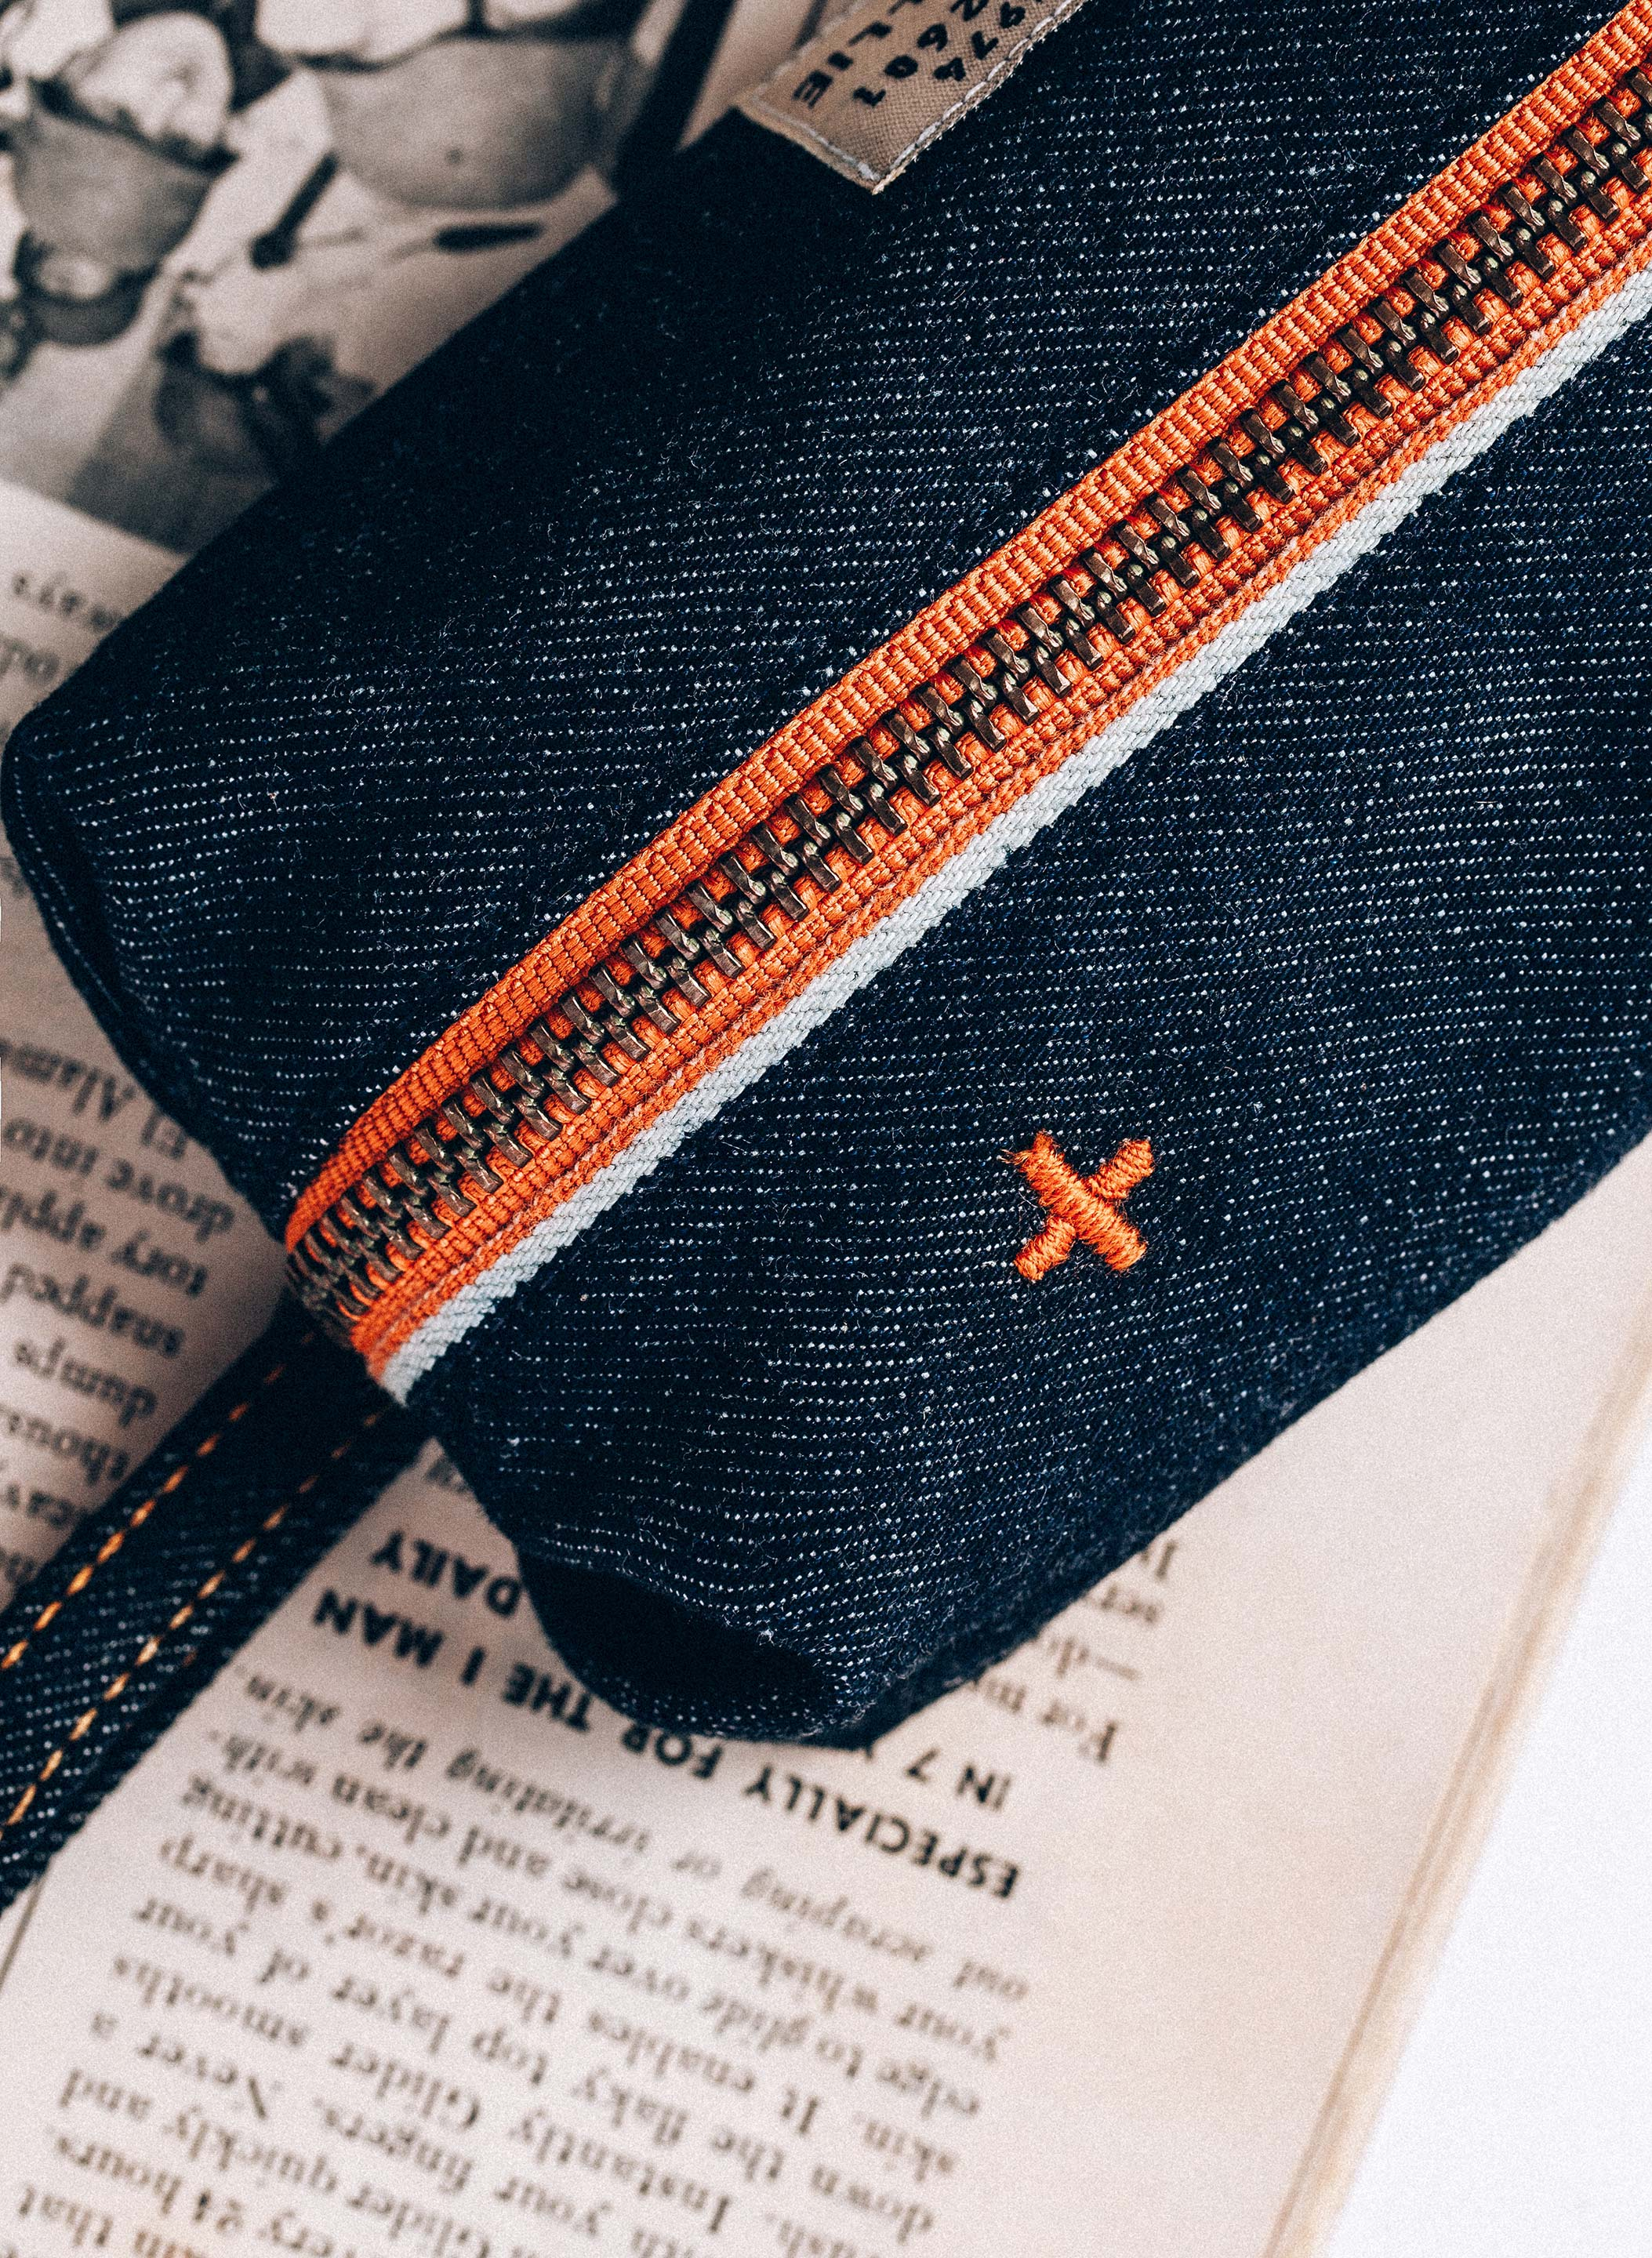 imogene + willie - the i+w selvage pencil bag